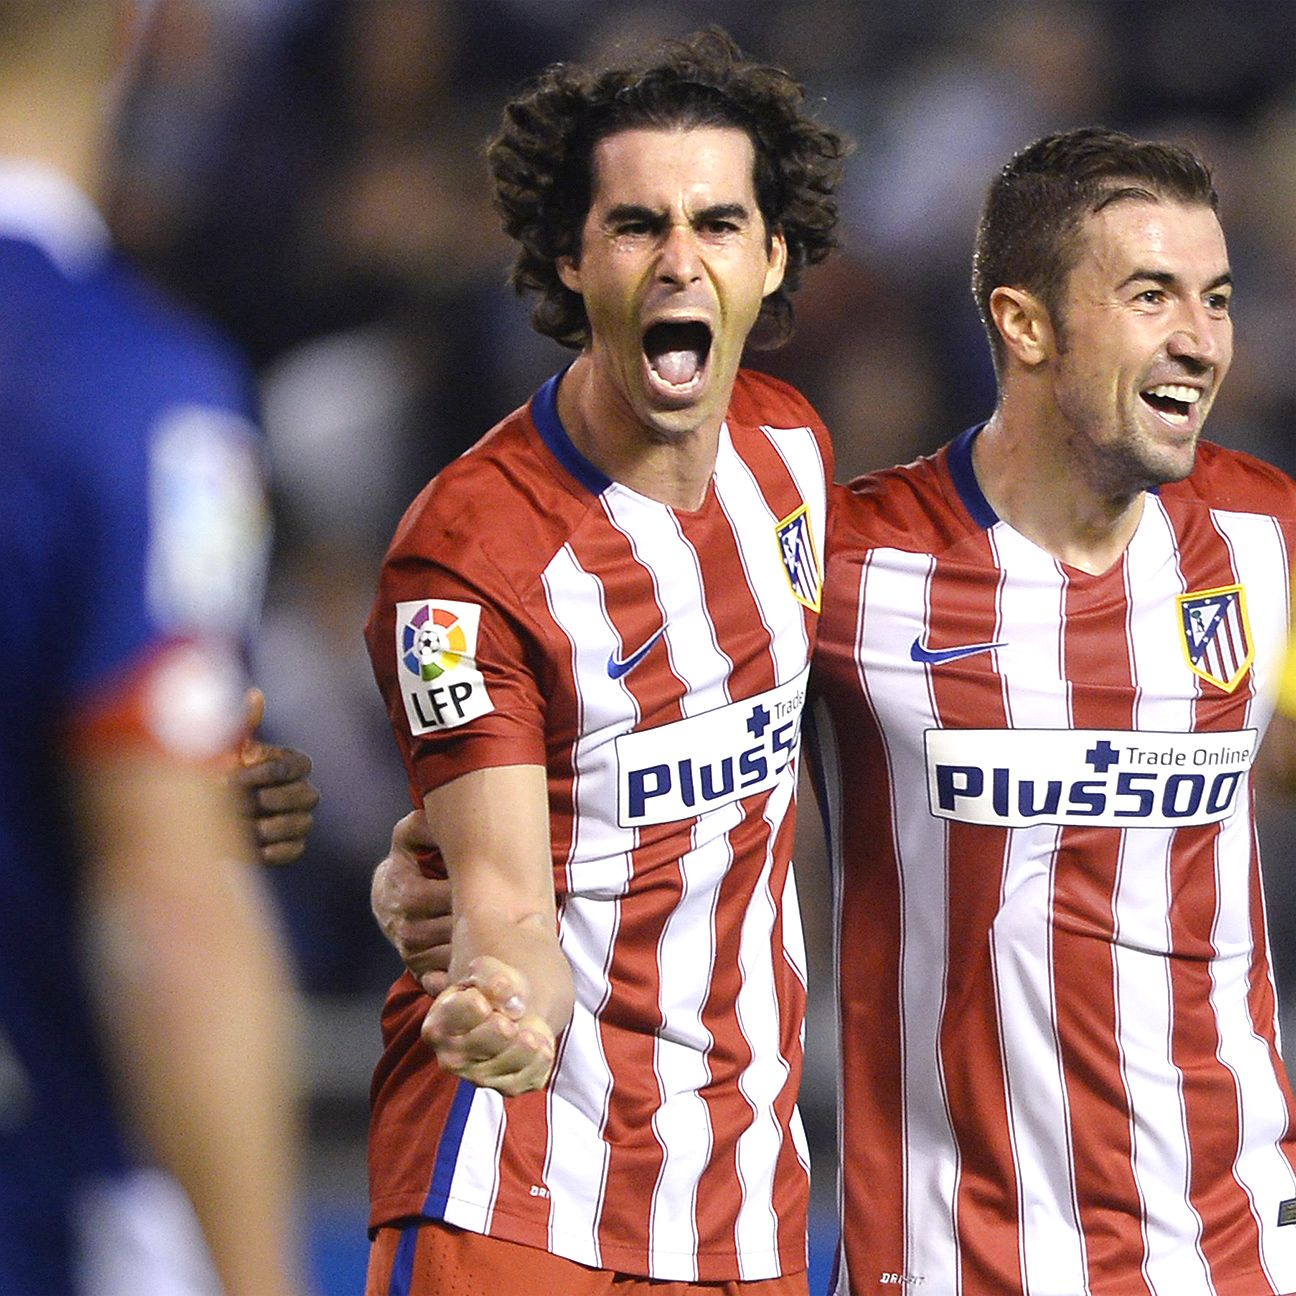 Tiago delivered another stellar performance for Atletico on Friday night in Galicia.